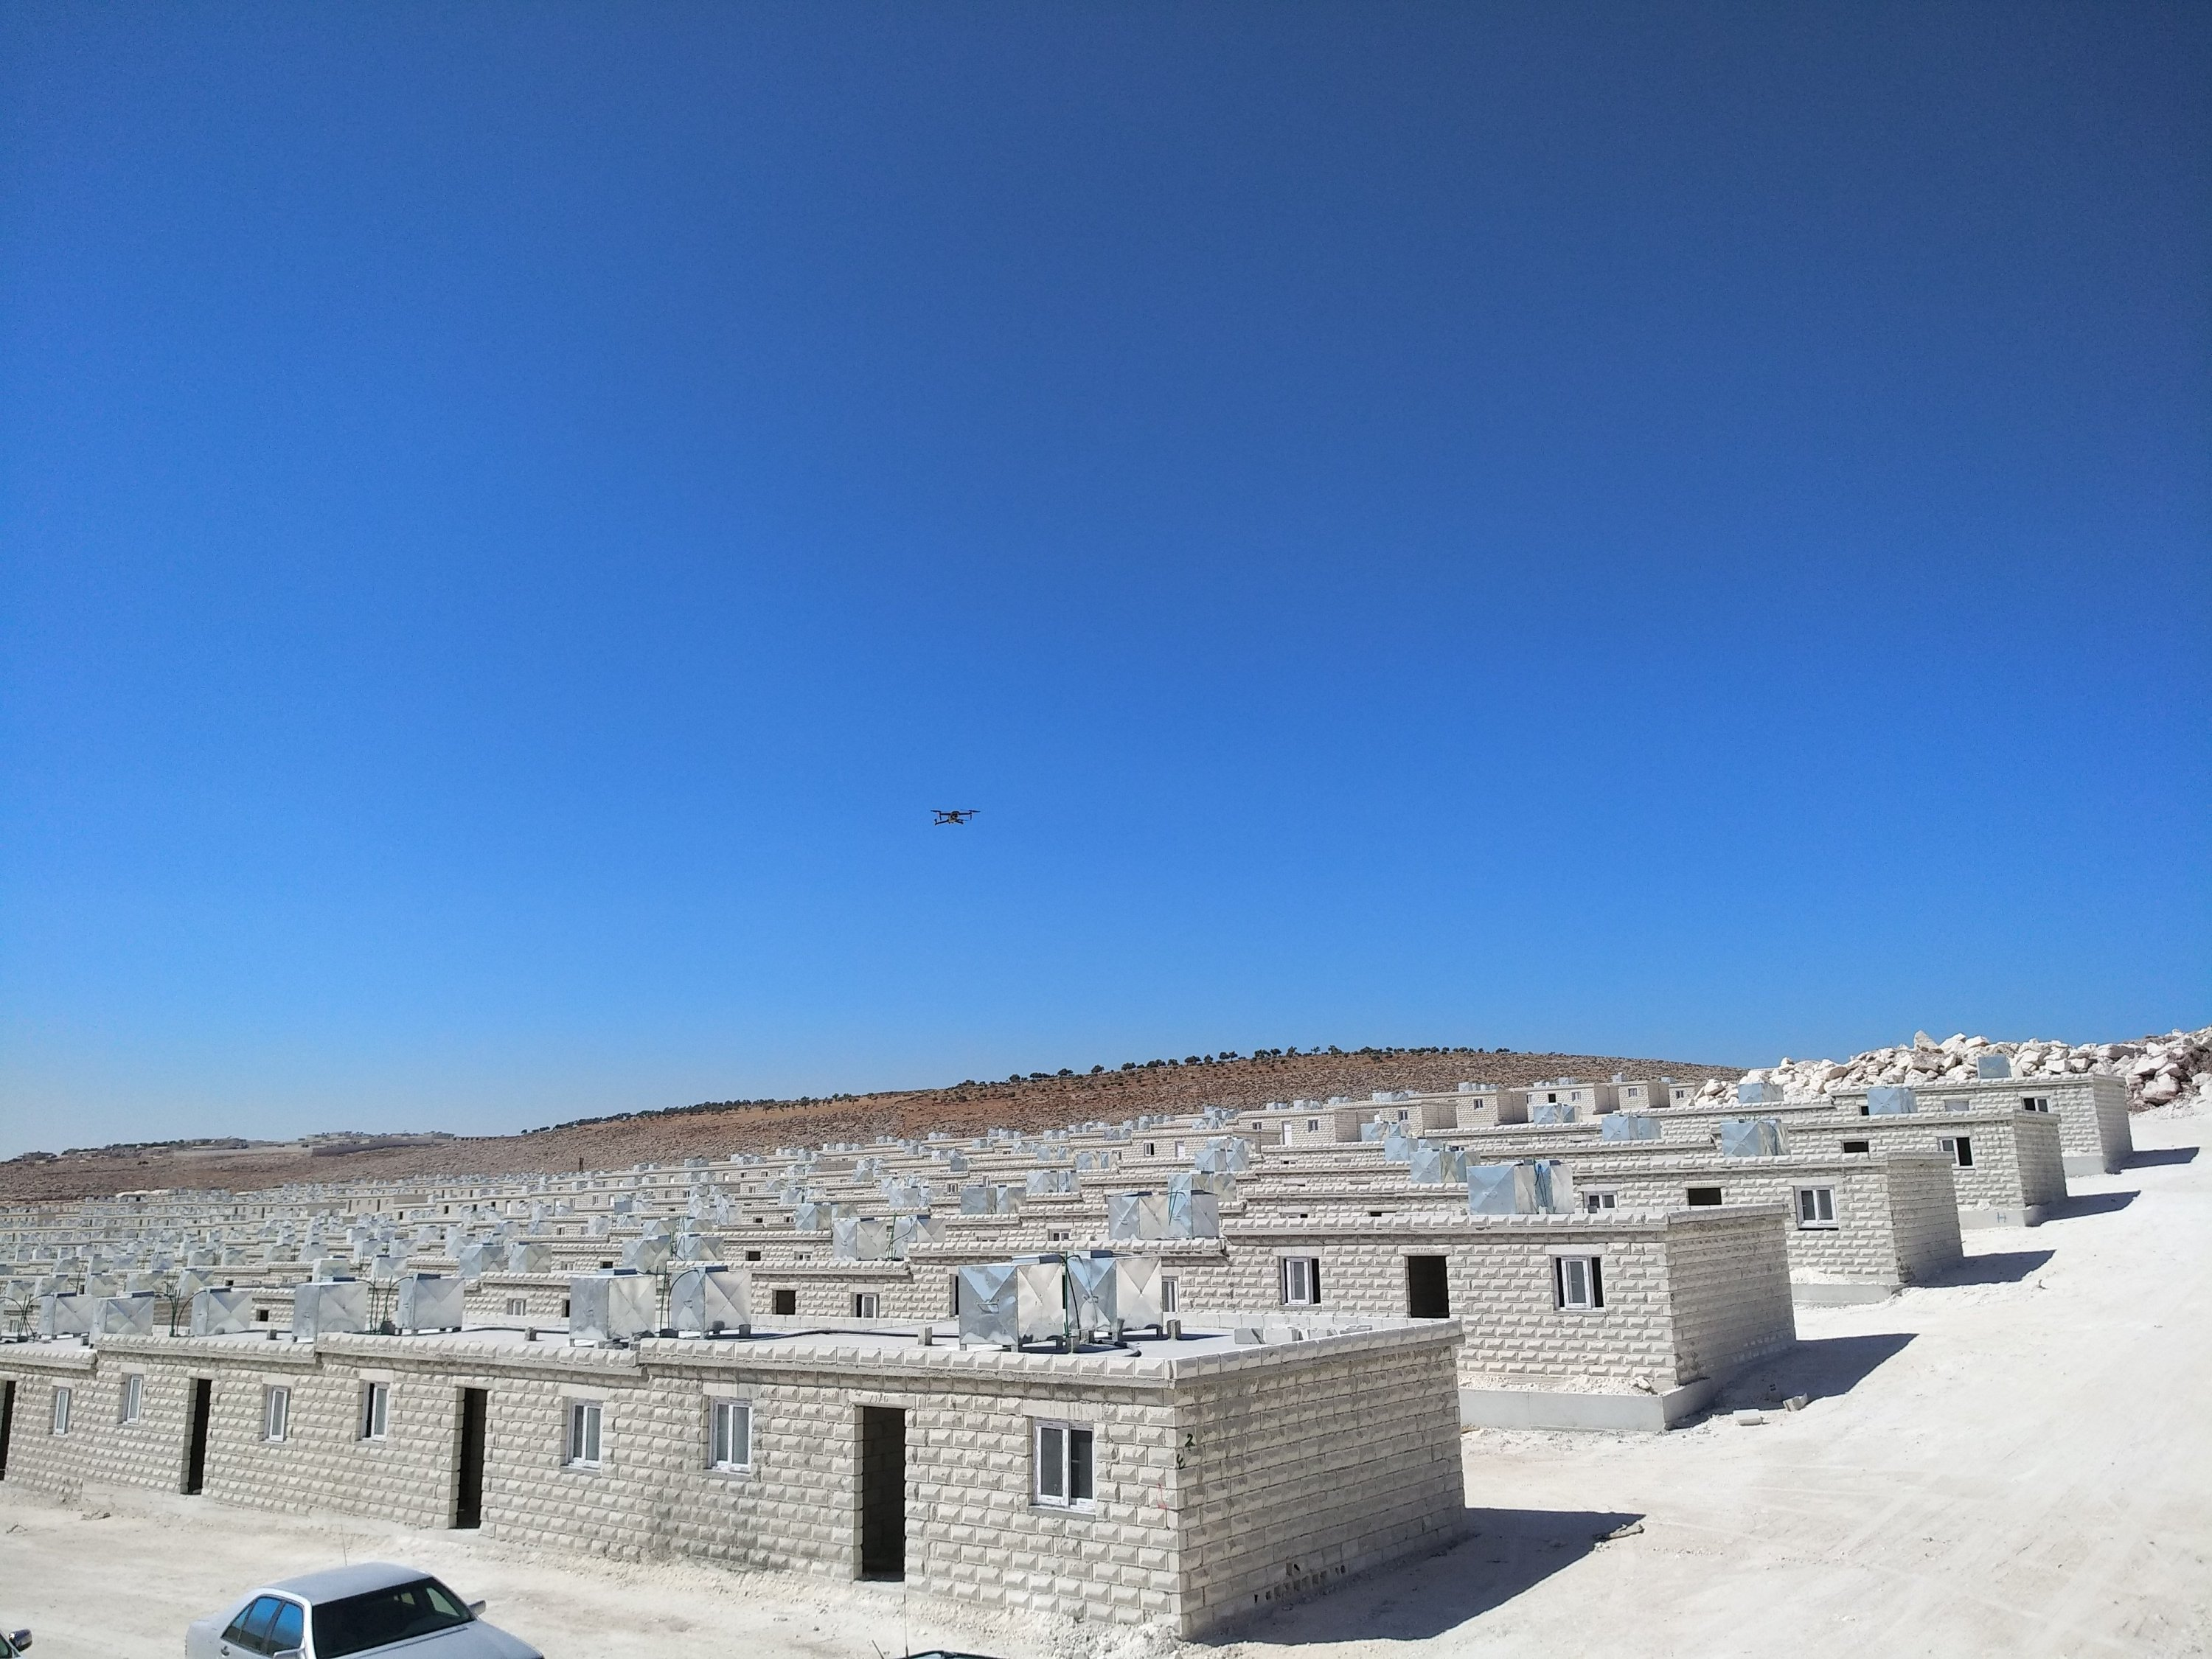 In order to improve conditions in the region, Turkish humanitarian agencies regularly provide aid to Idlib, with an emphasis on building houses for the displaced, currently living in tent camps.